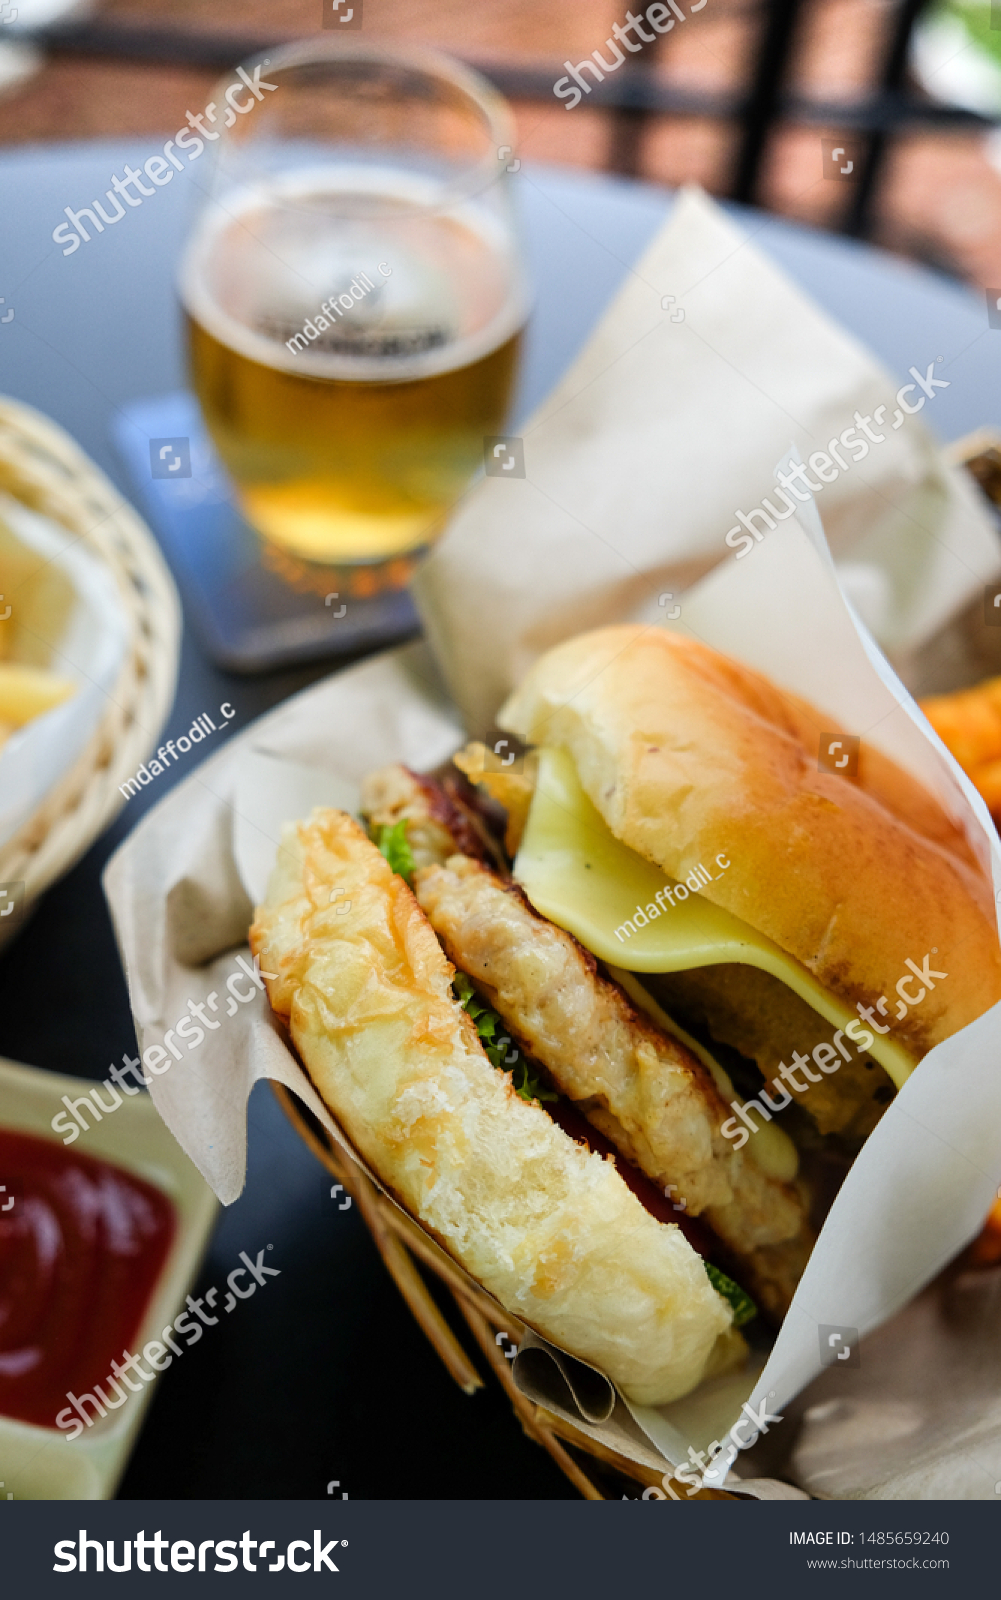 Big pork and cheese hamburger to eat with soft drink. Food and drink #1485659240